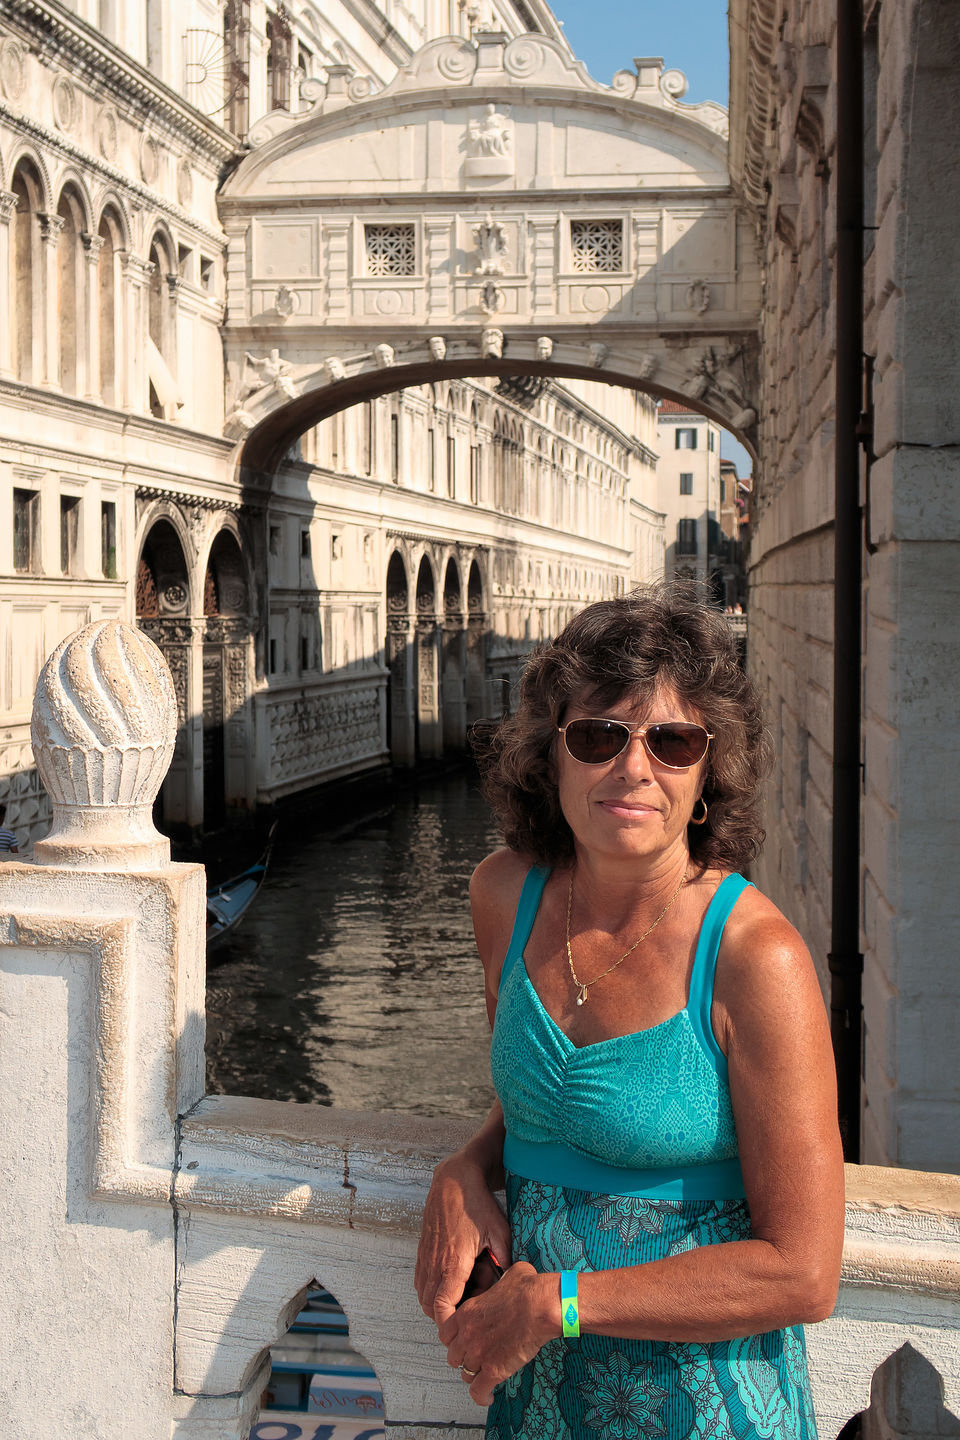 Lolo and the Bridge of Sighs